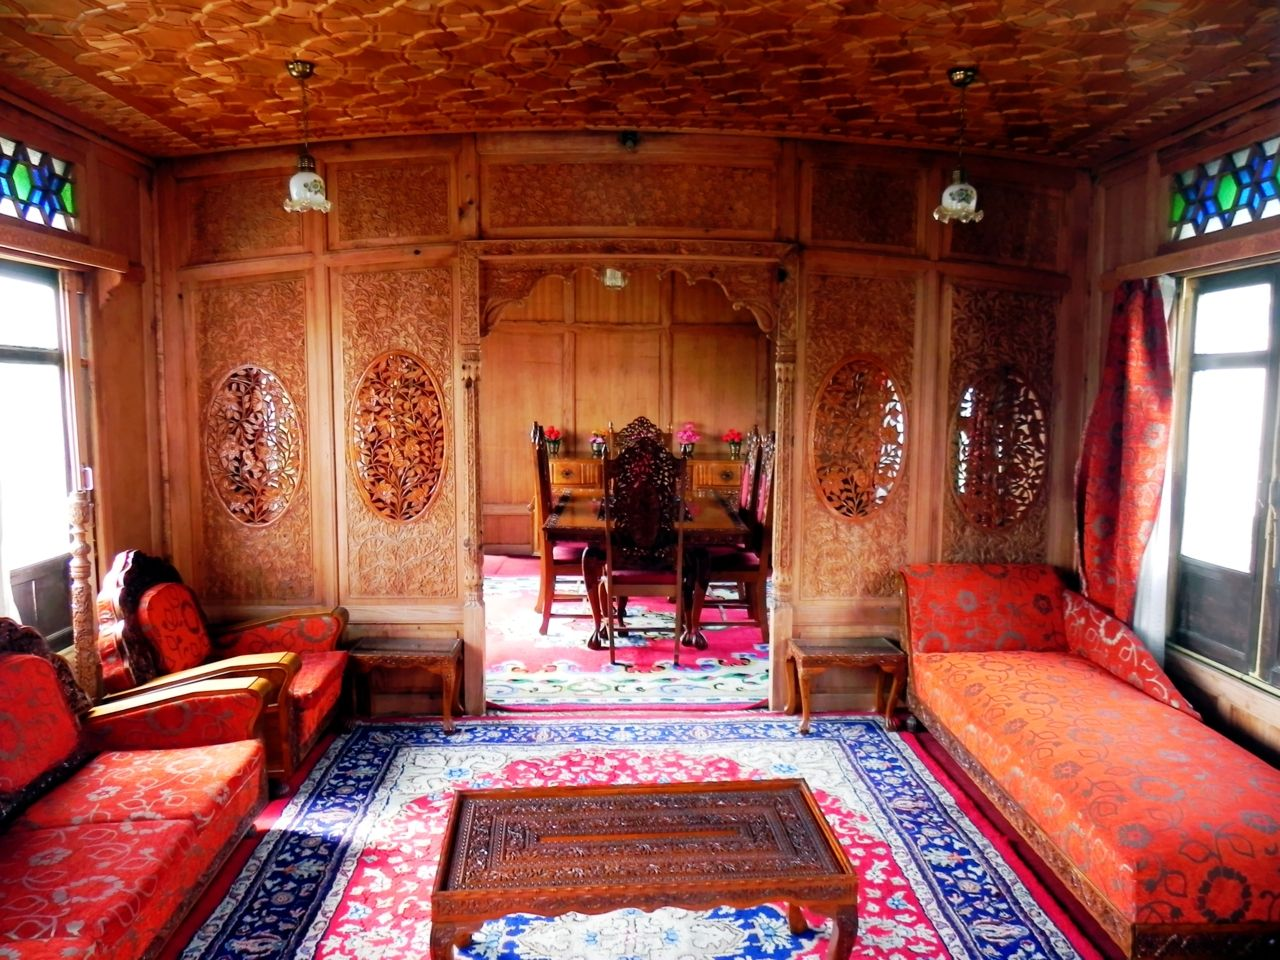 House boat kashmir india a must in sri nagarthe incredible hospitality the caretakers are capable of is astonishing